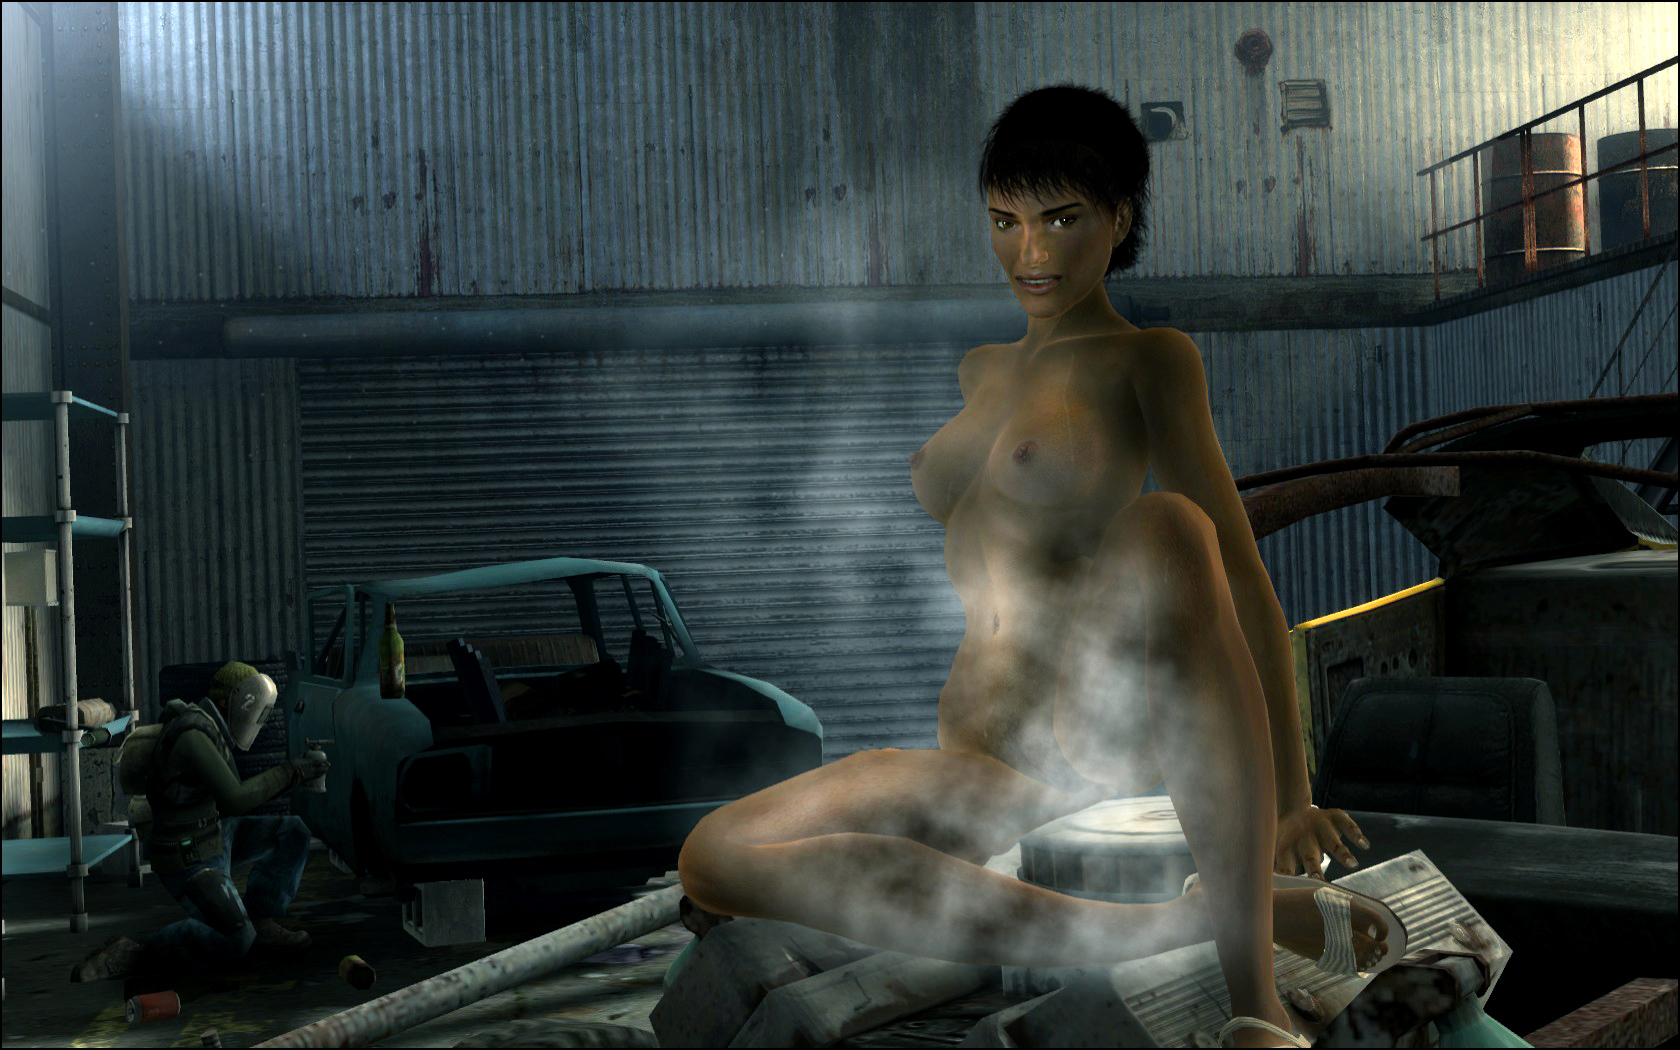 mod female nude glorious fallout 4 Pics of wolves to draw